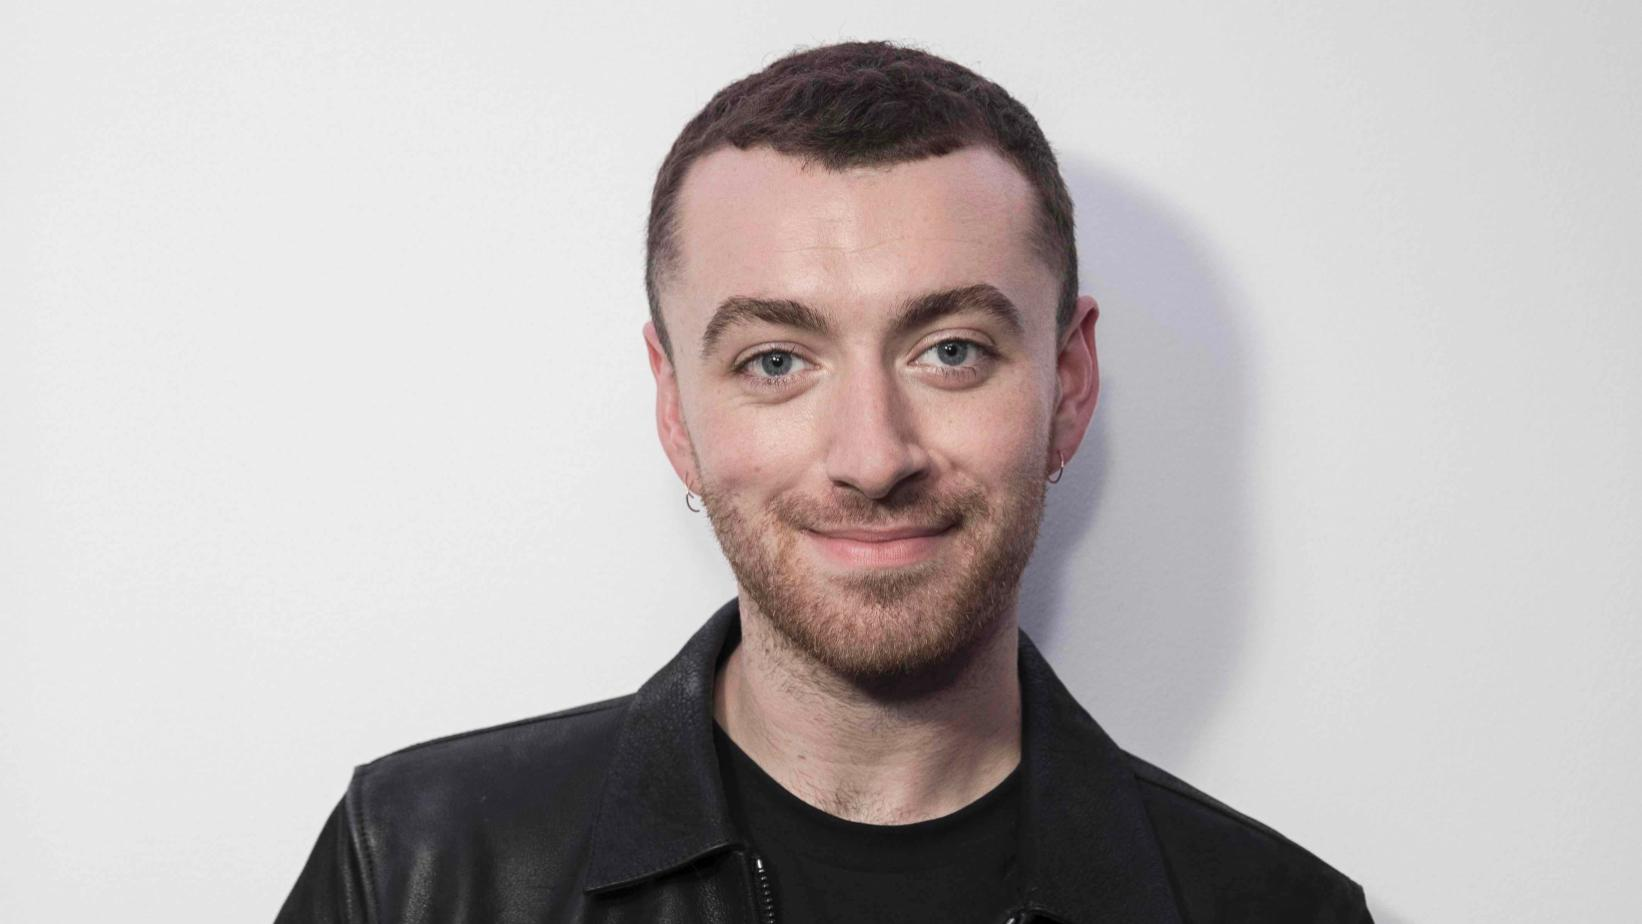 """sam-smith-gets-candid-about-body-image-issues-says-he-used-to-starve-himself"""